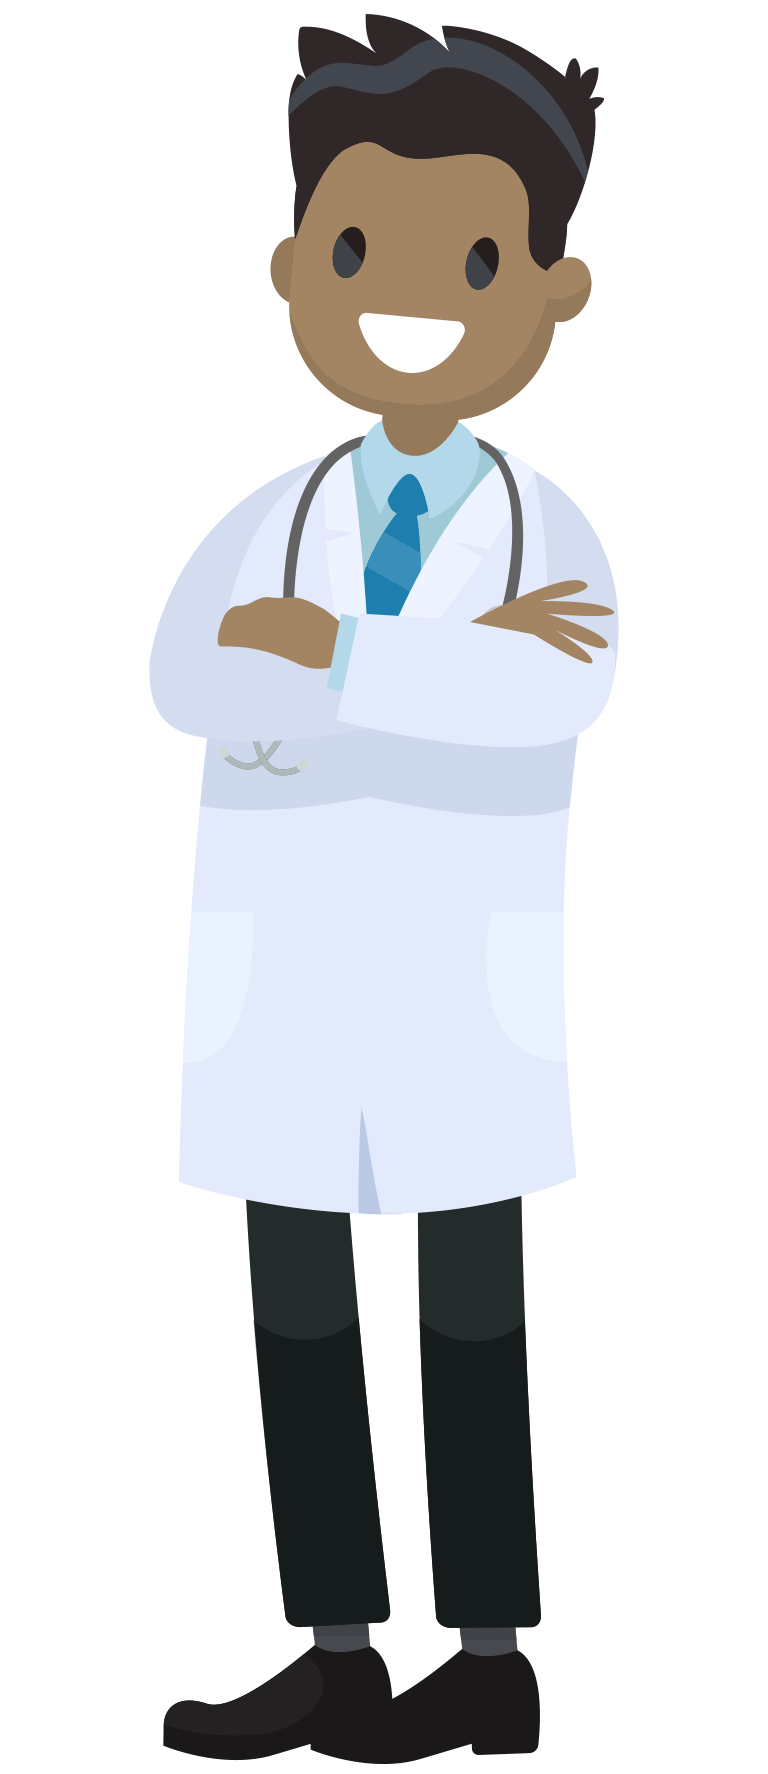 Patient clipart doctor exam. Easy way to save